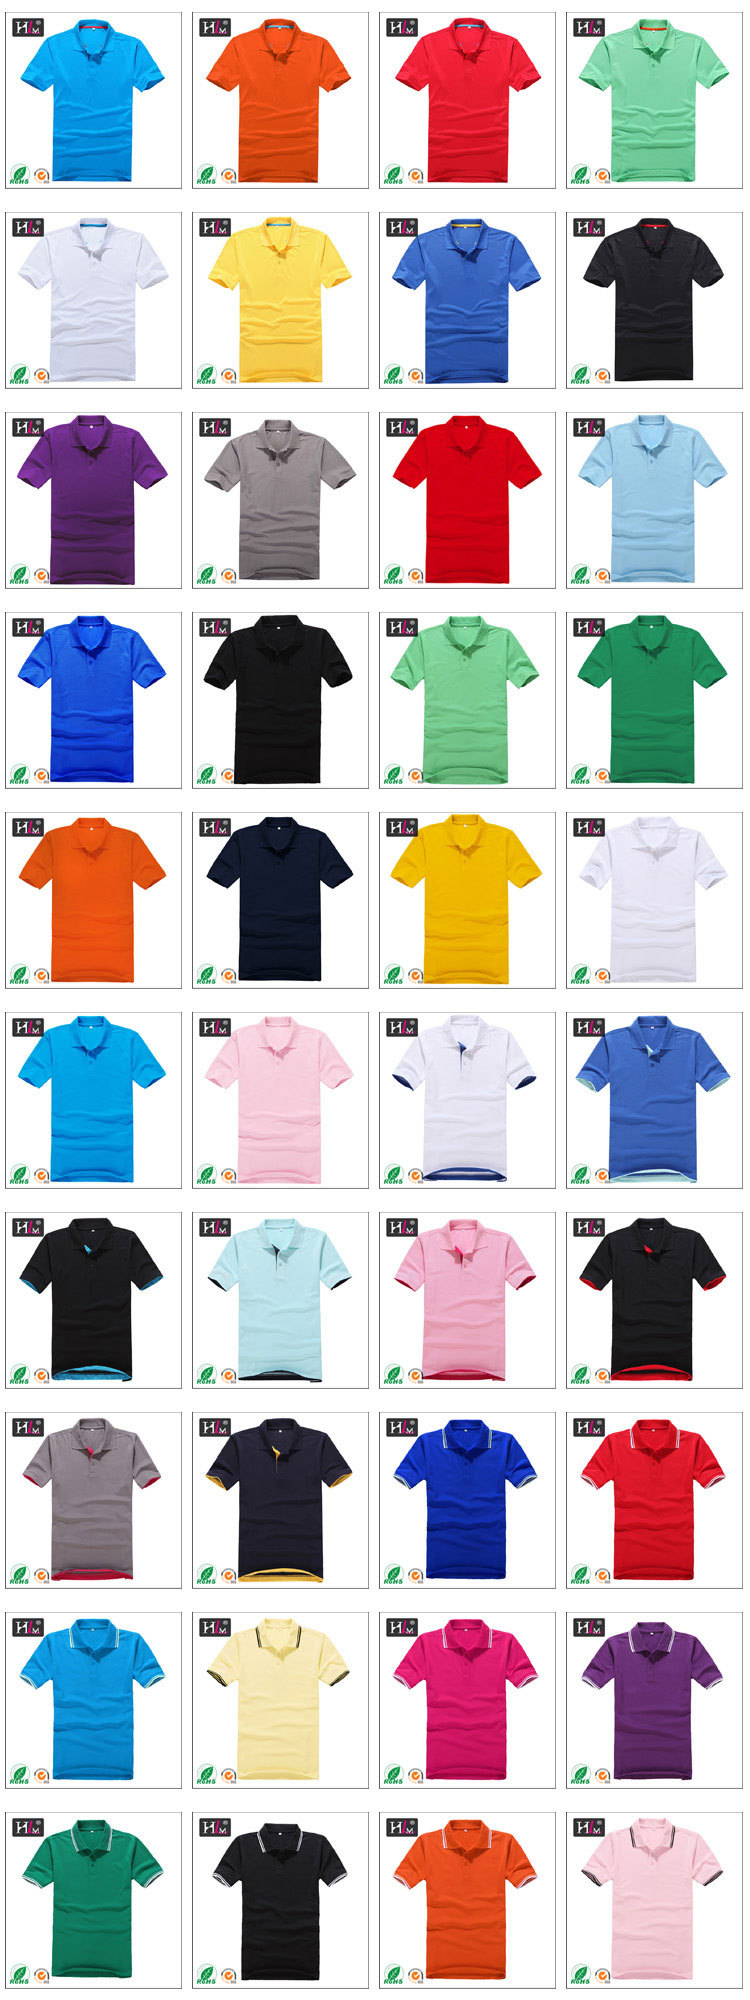 Shirt design sell - Top Hot Sell New Design Top10 Factory Sale Polo T Shirt Mockup Free For Man